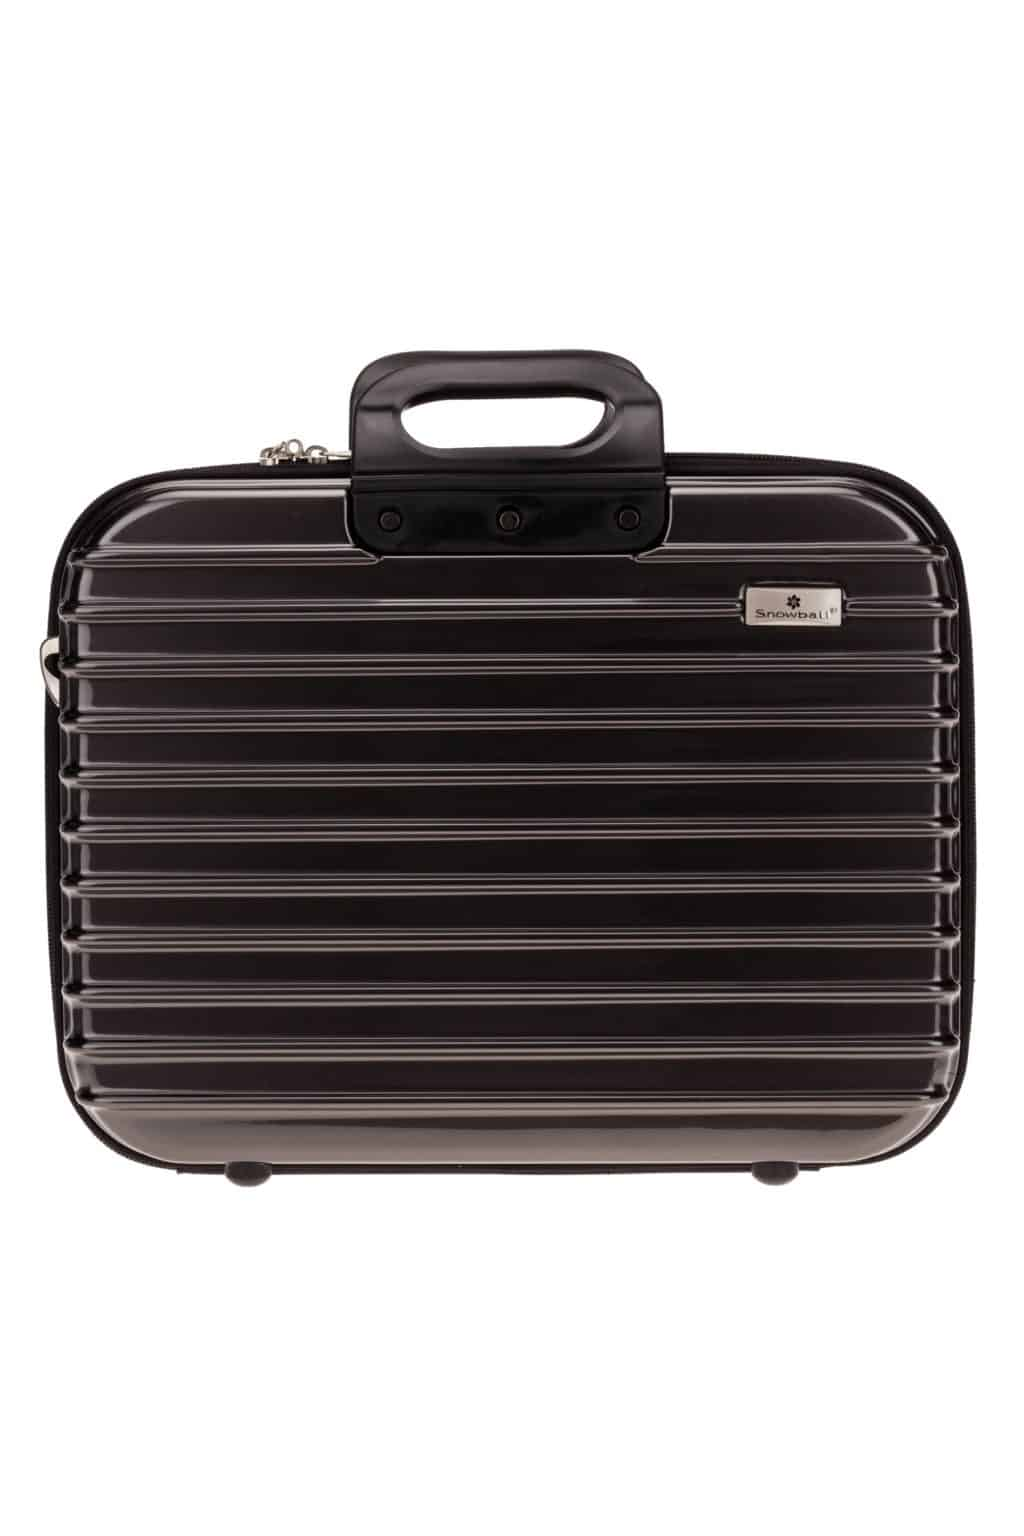 Attaché case rigide pas cher